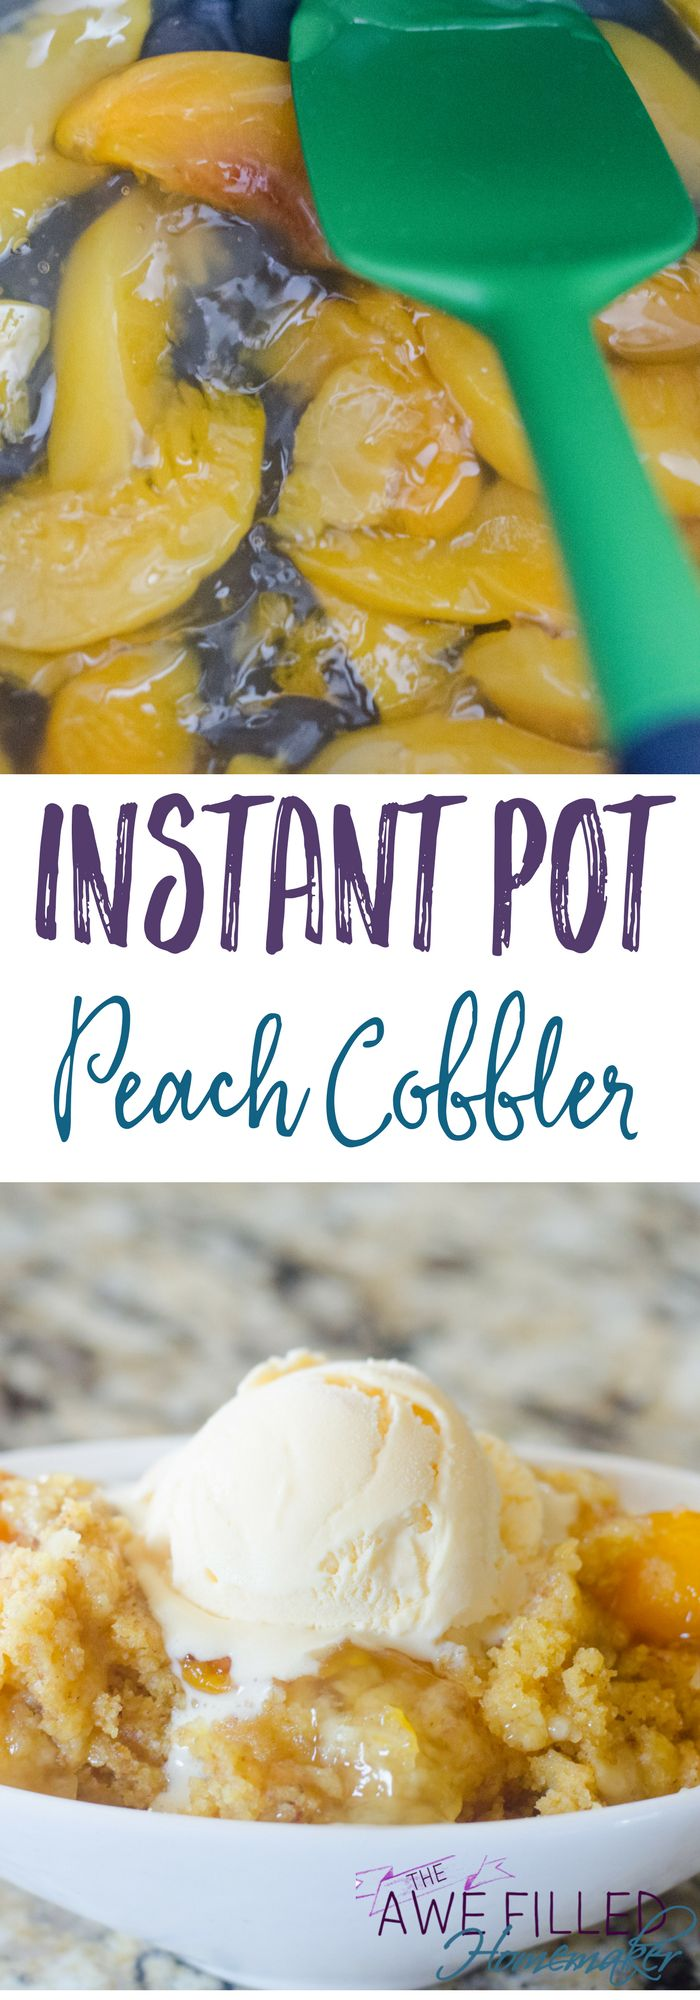 What is the history of peach cobbler and how exactly do you whip up a peach cobbler recipe for the instant pot? Today you can learn about both! Delicious!